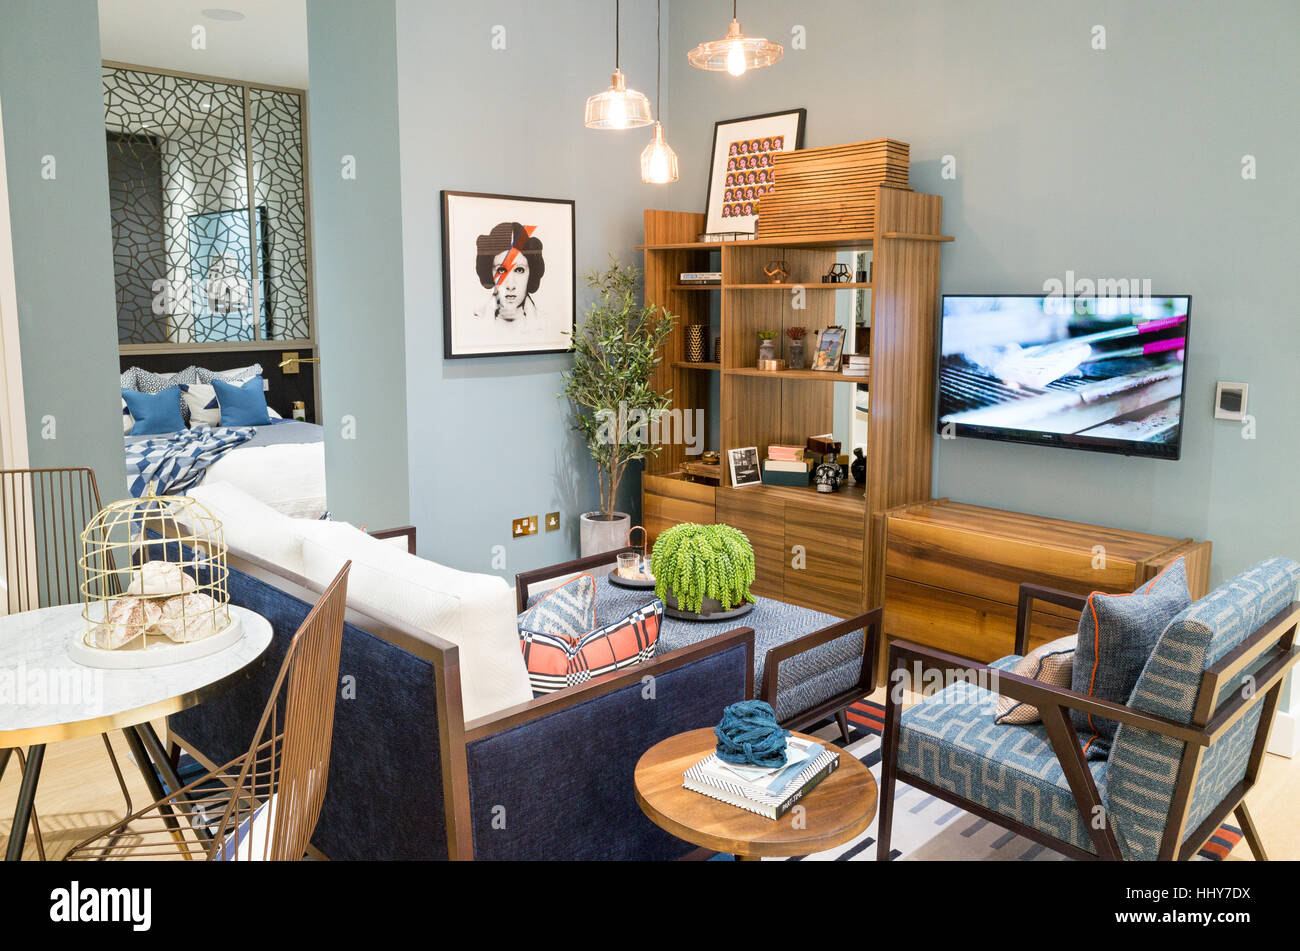 Apartment showroom living room in the marketing suite of a new property development, England, UK - Stock Image